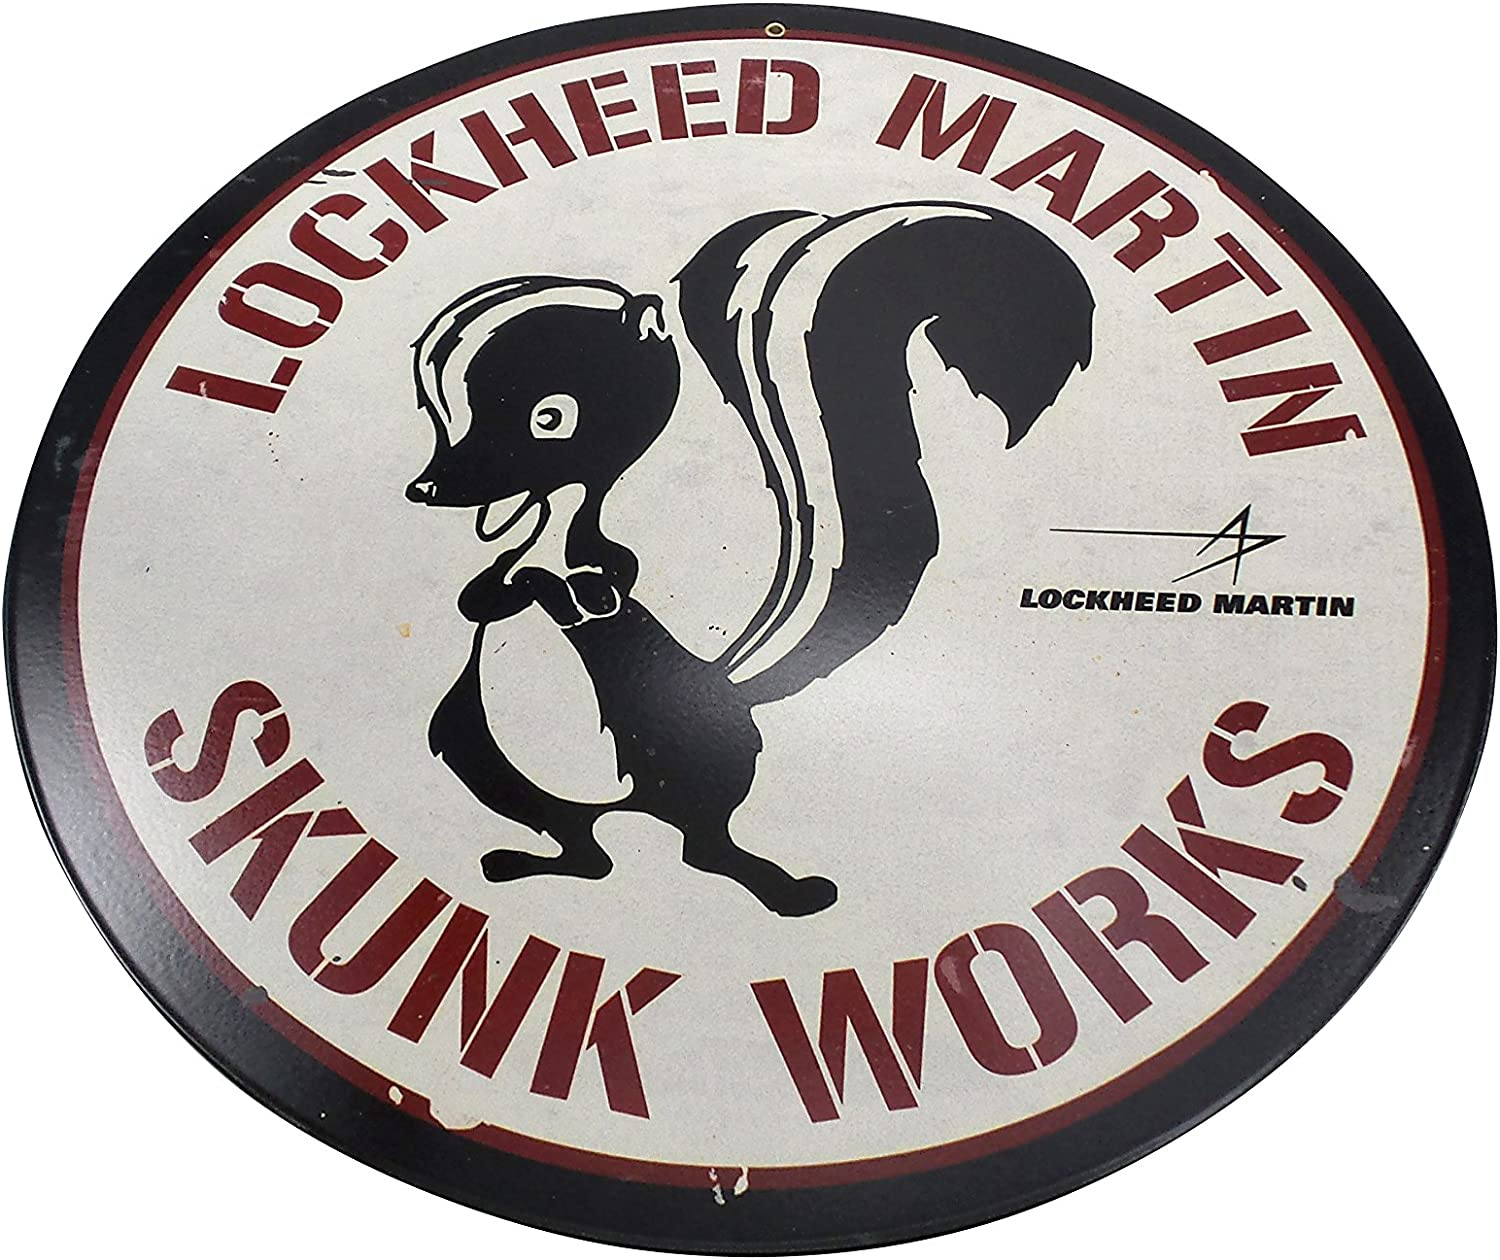 Past Time Opening large release sale Signs 5% OFF LM007 Skunk Works Aviation Round Vintage S Metal